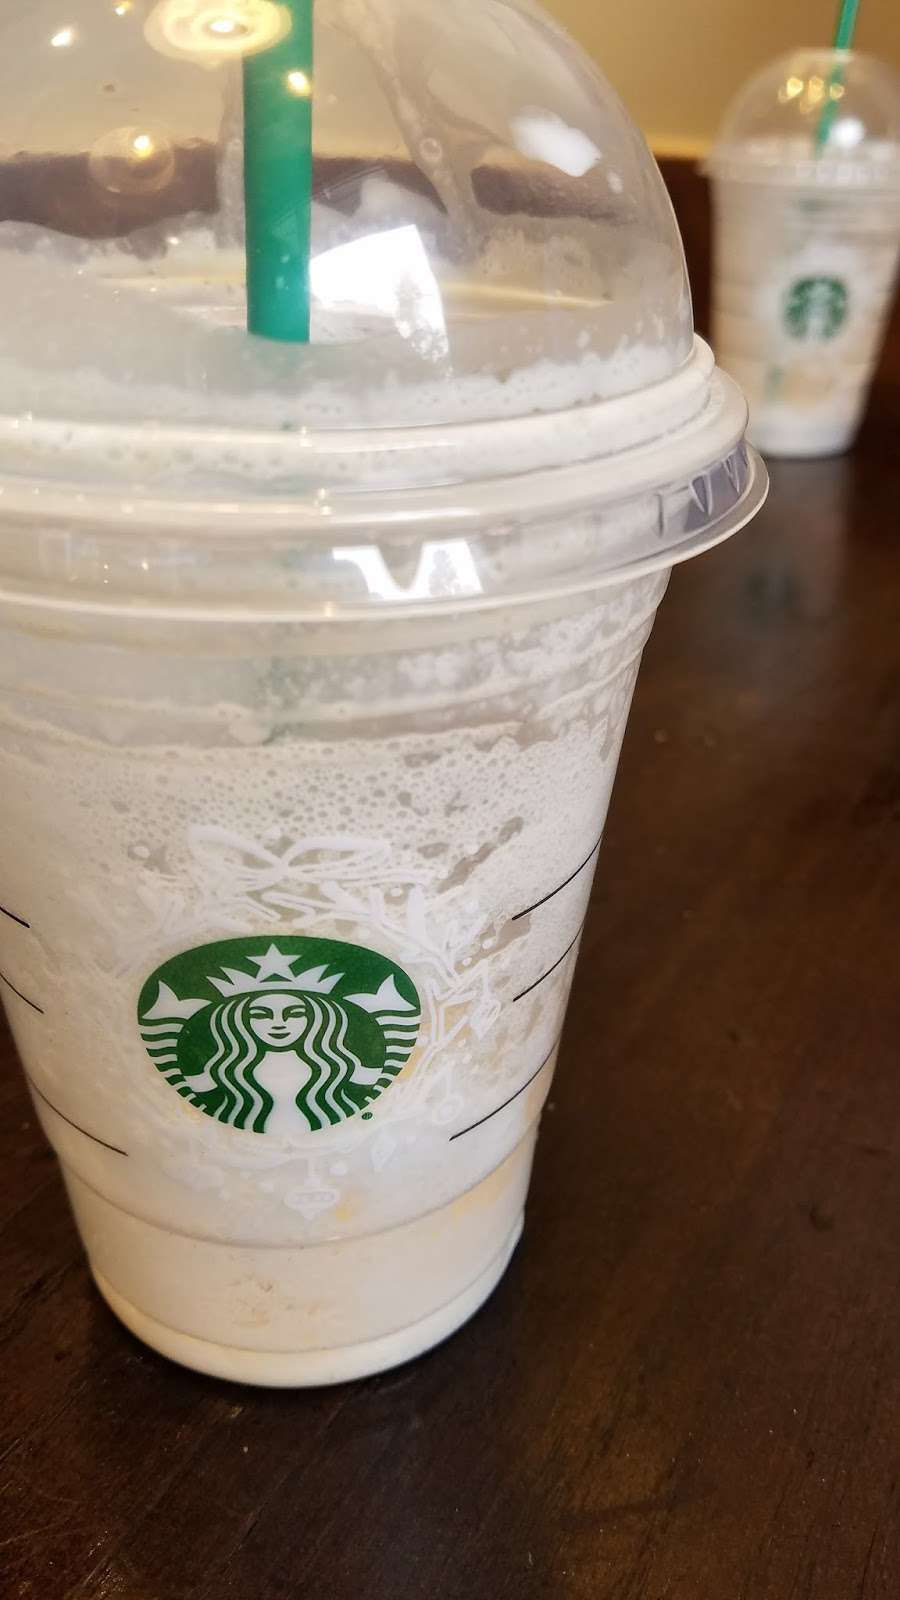 Starbucks - cafe  | Photo 10 of 10 | Address: 9955 Woodlands Pkwy, The Woodlands, TX 77382, USA | Phone: (281) 419-0329